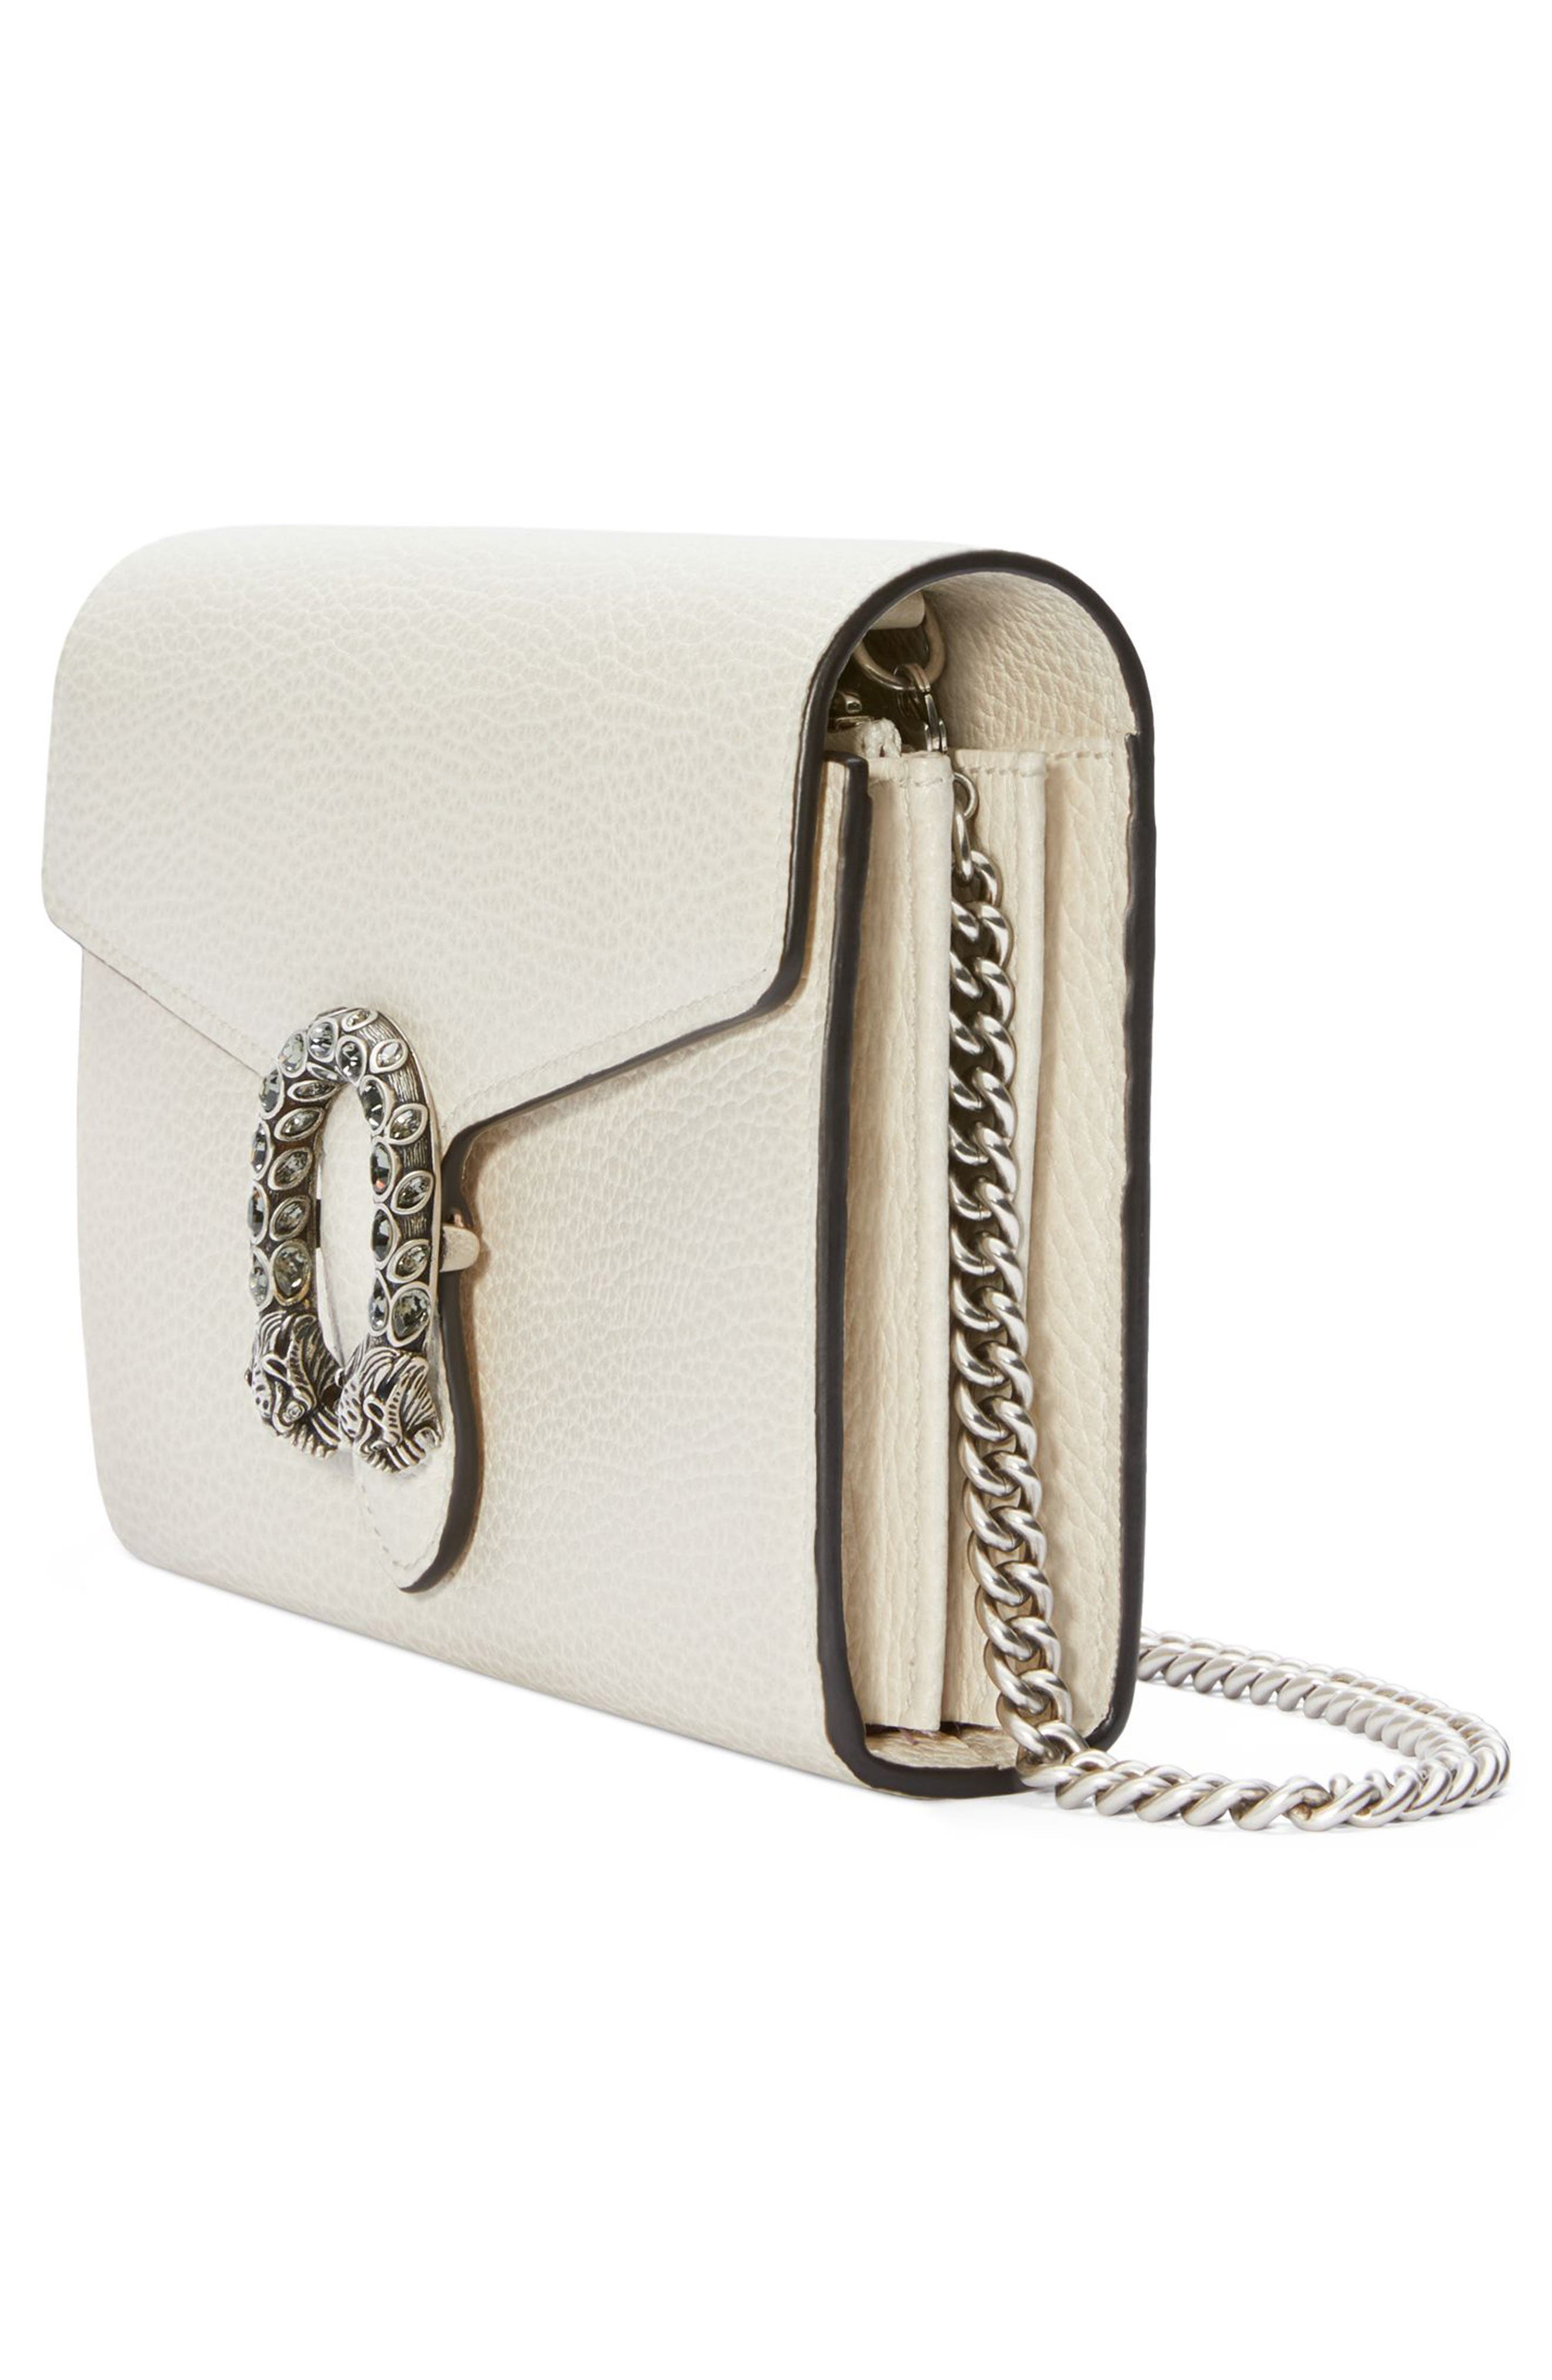 Small Dionysus Leather Clutch,                             Alternate thumbnail 4, color,                             MYSTIC WHITE/ BLACK DIAMOND